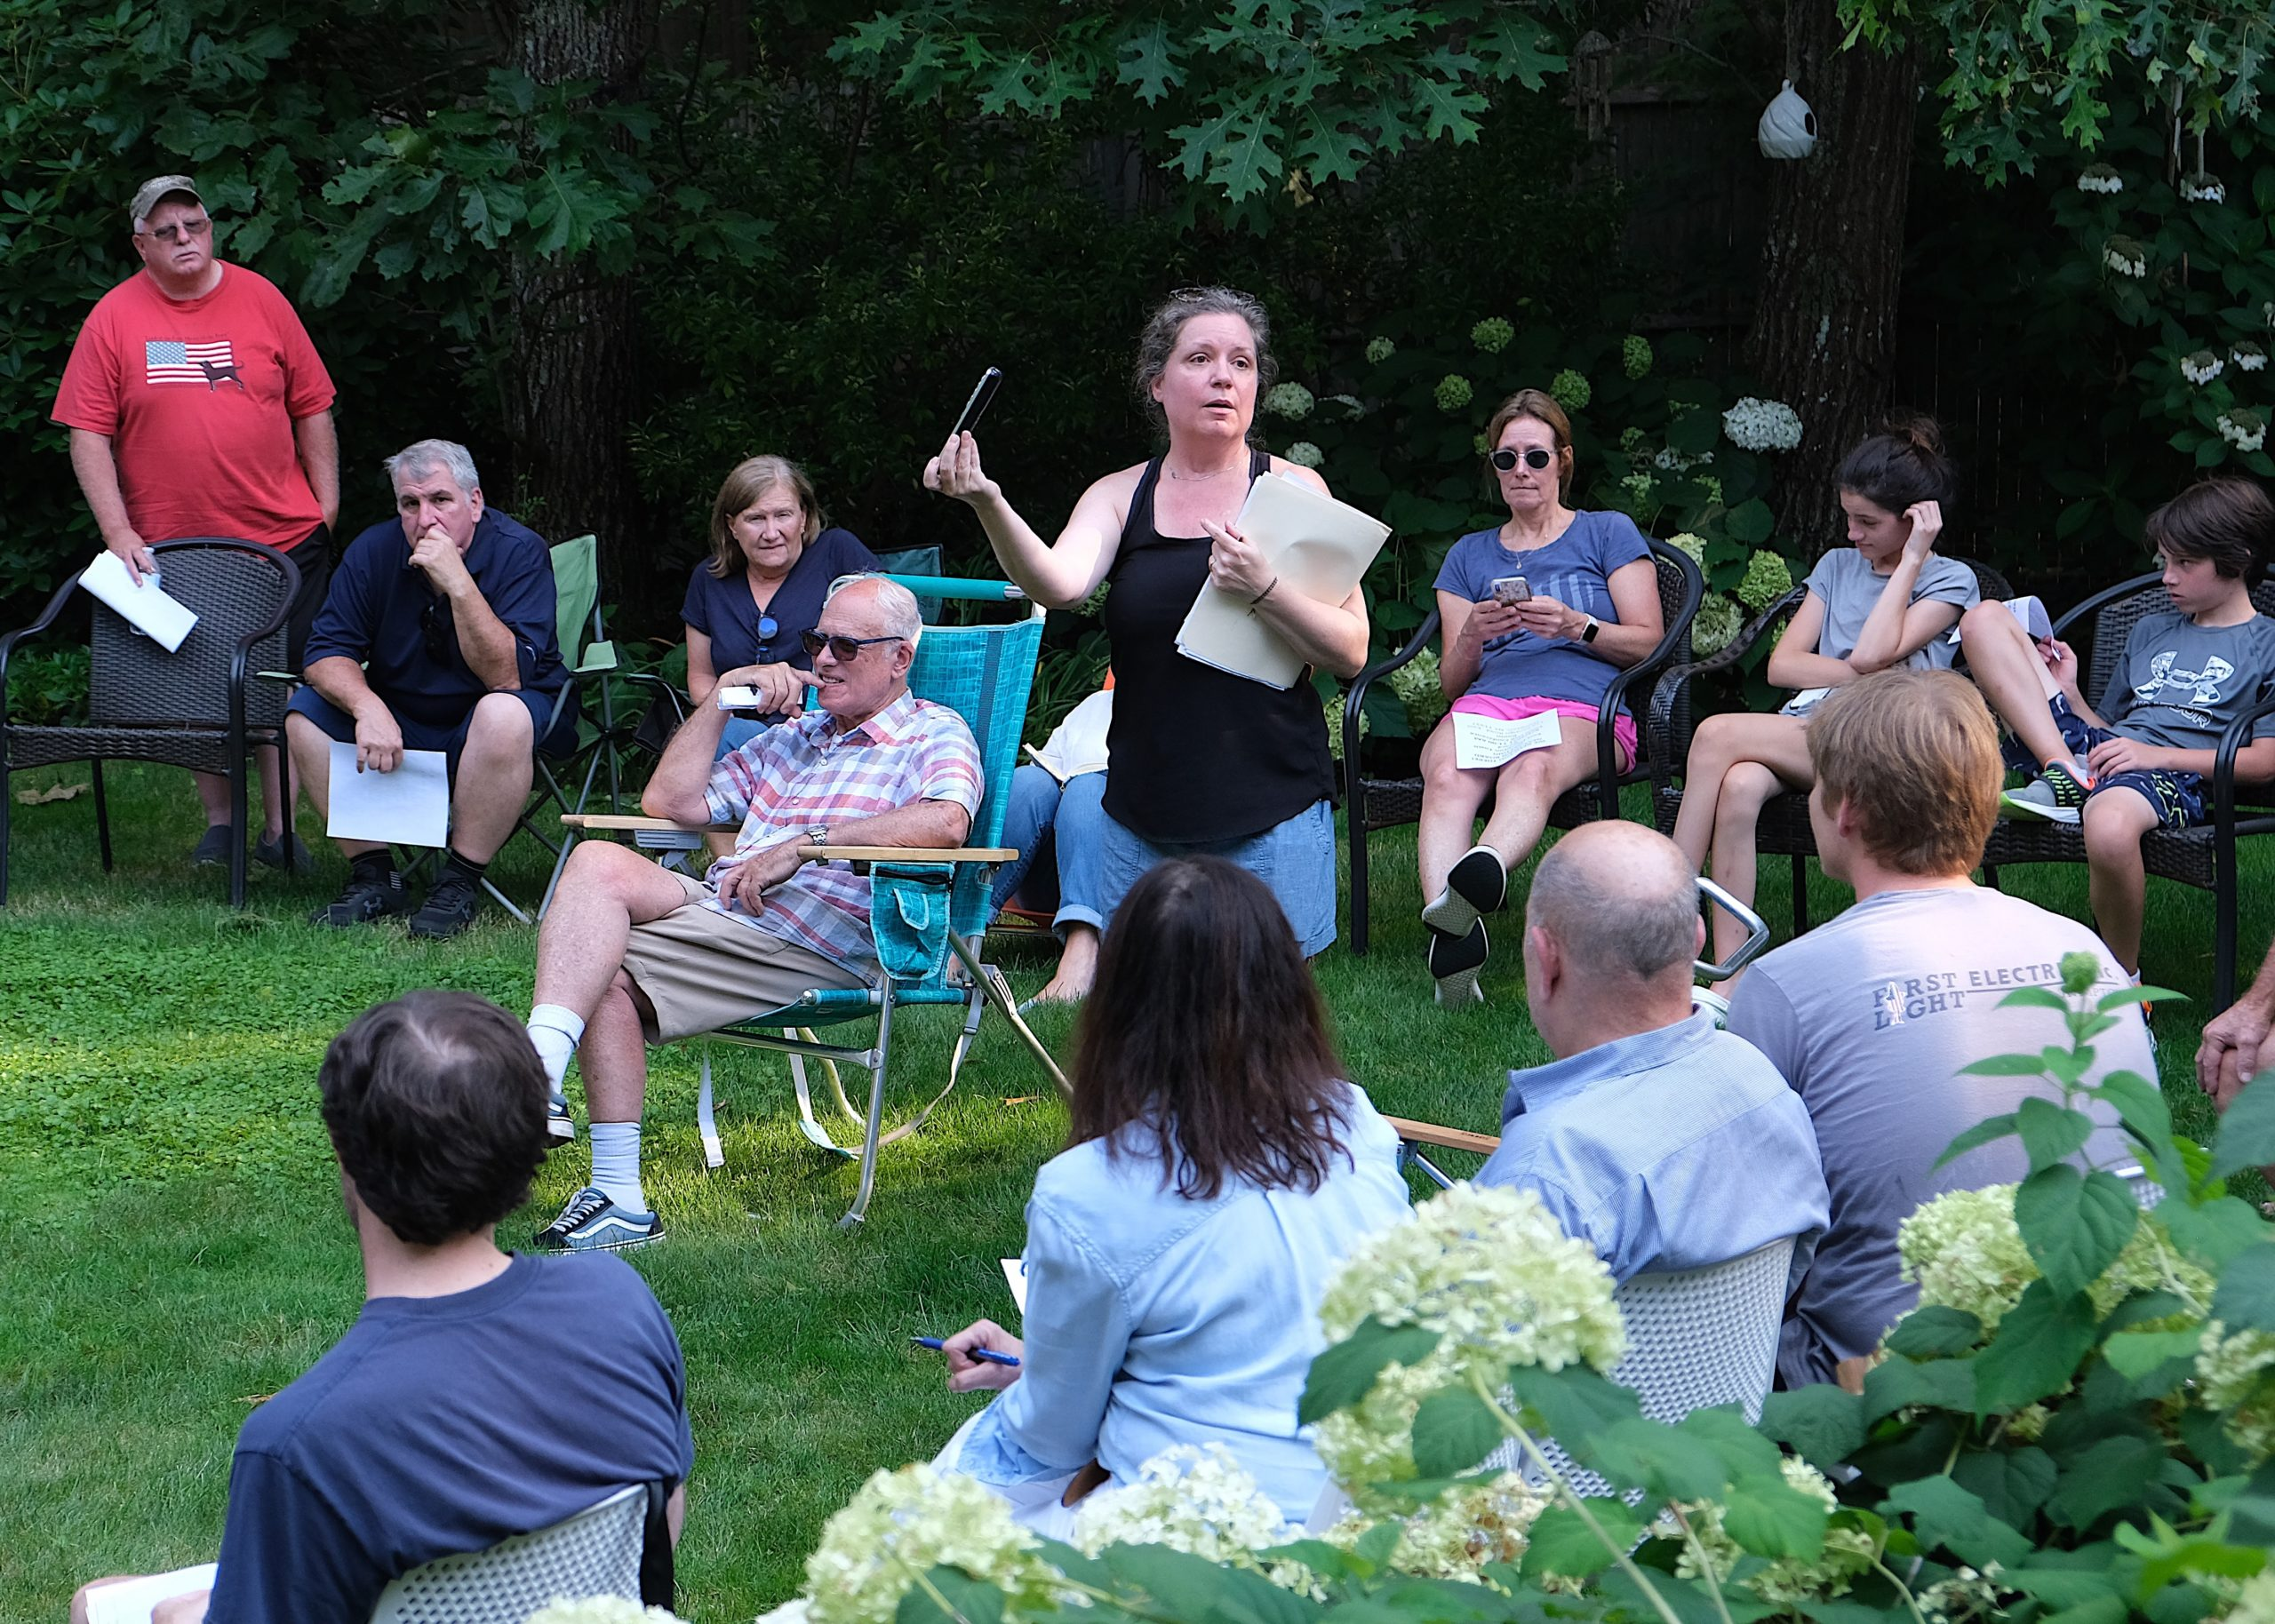 Residents of the Springs neighborhood that surrounds land the town has proposed putting a cell tower on gathered on Monday evening to discuss how best to oppose the project.